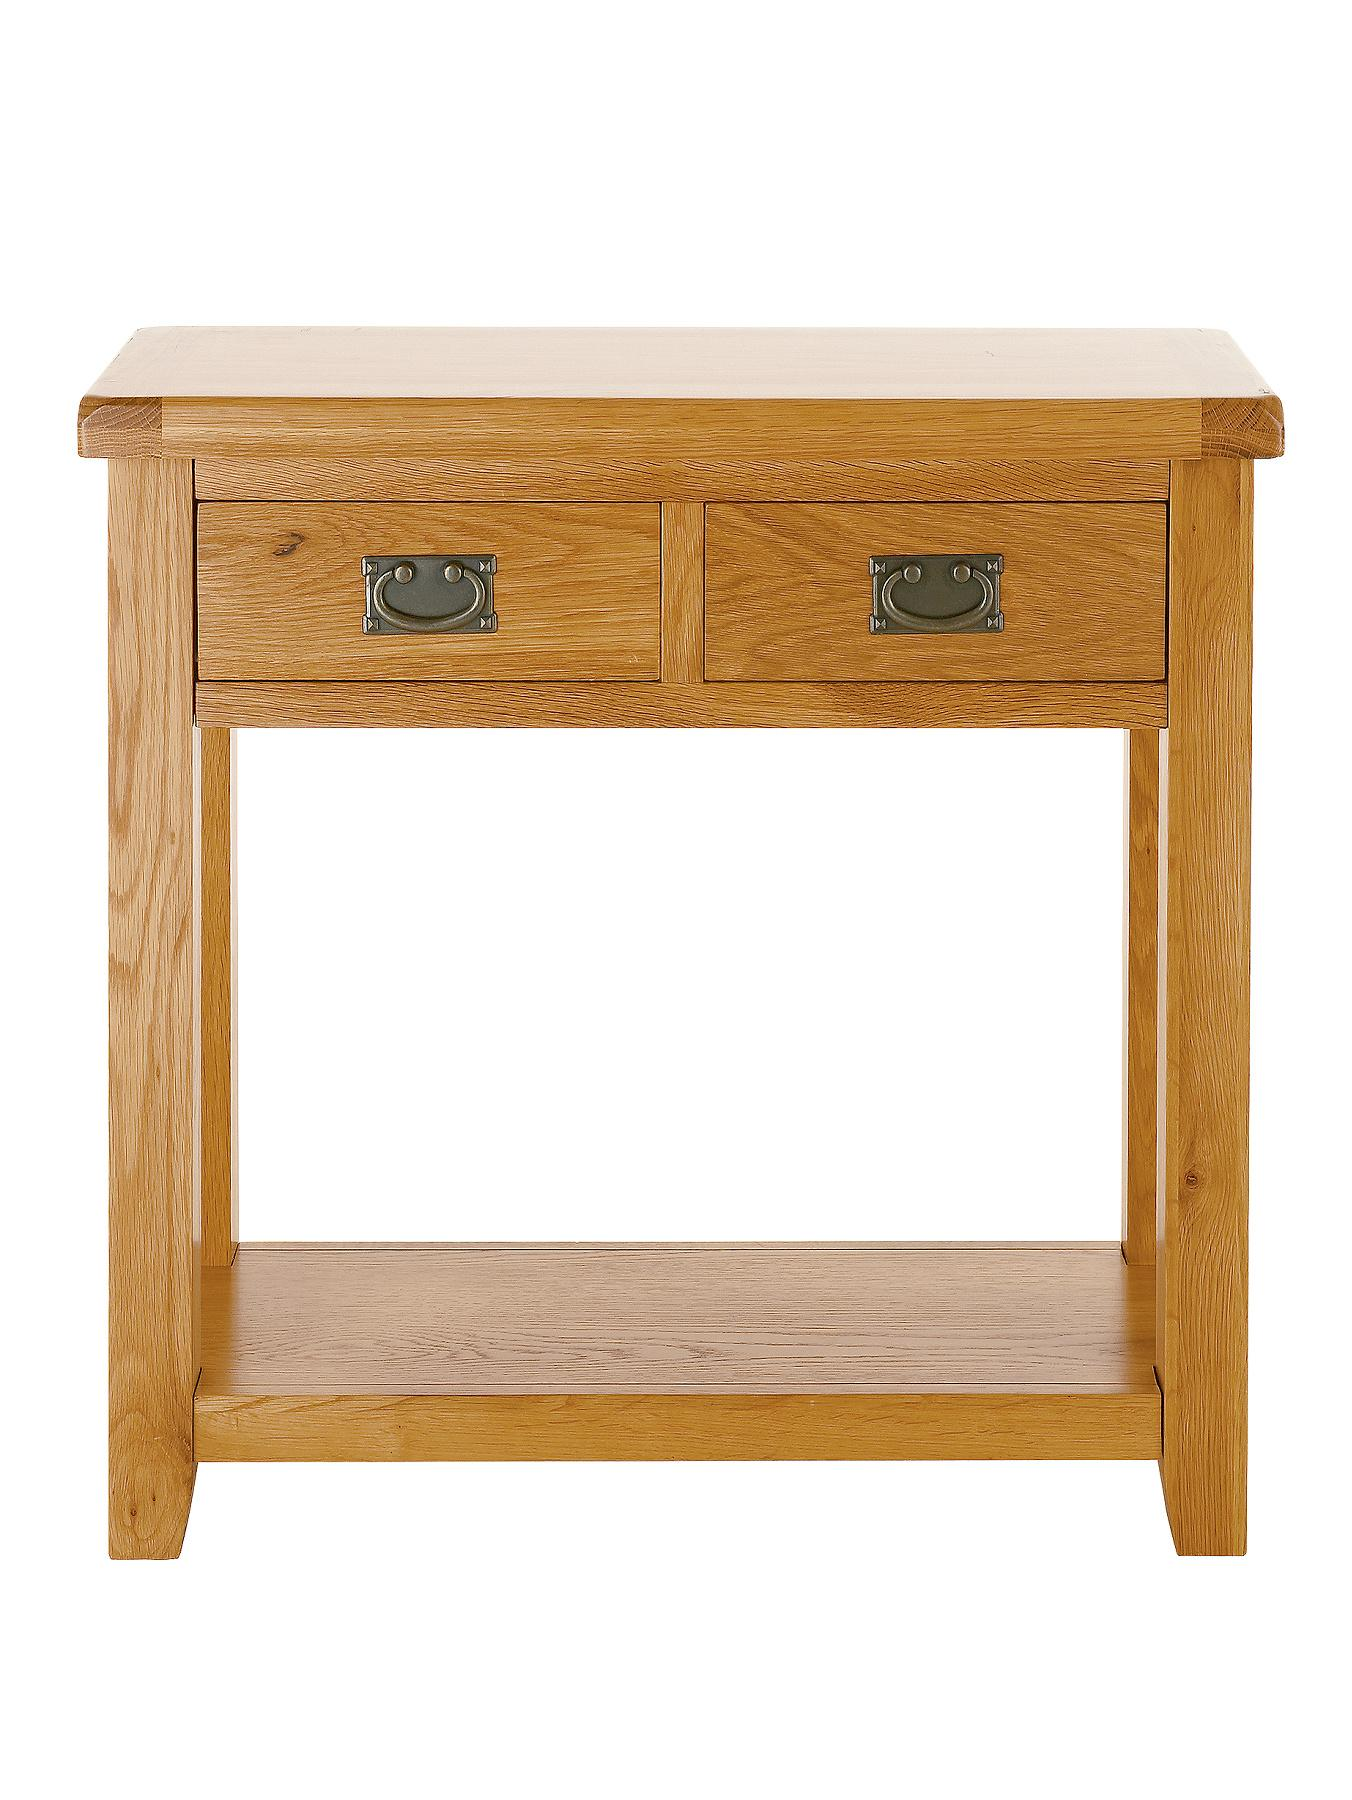 Oakland 2-Drawer Console Table